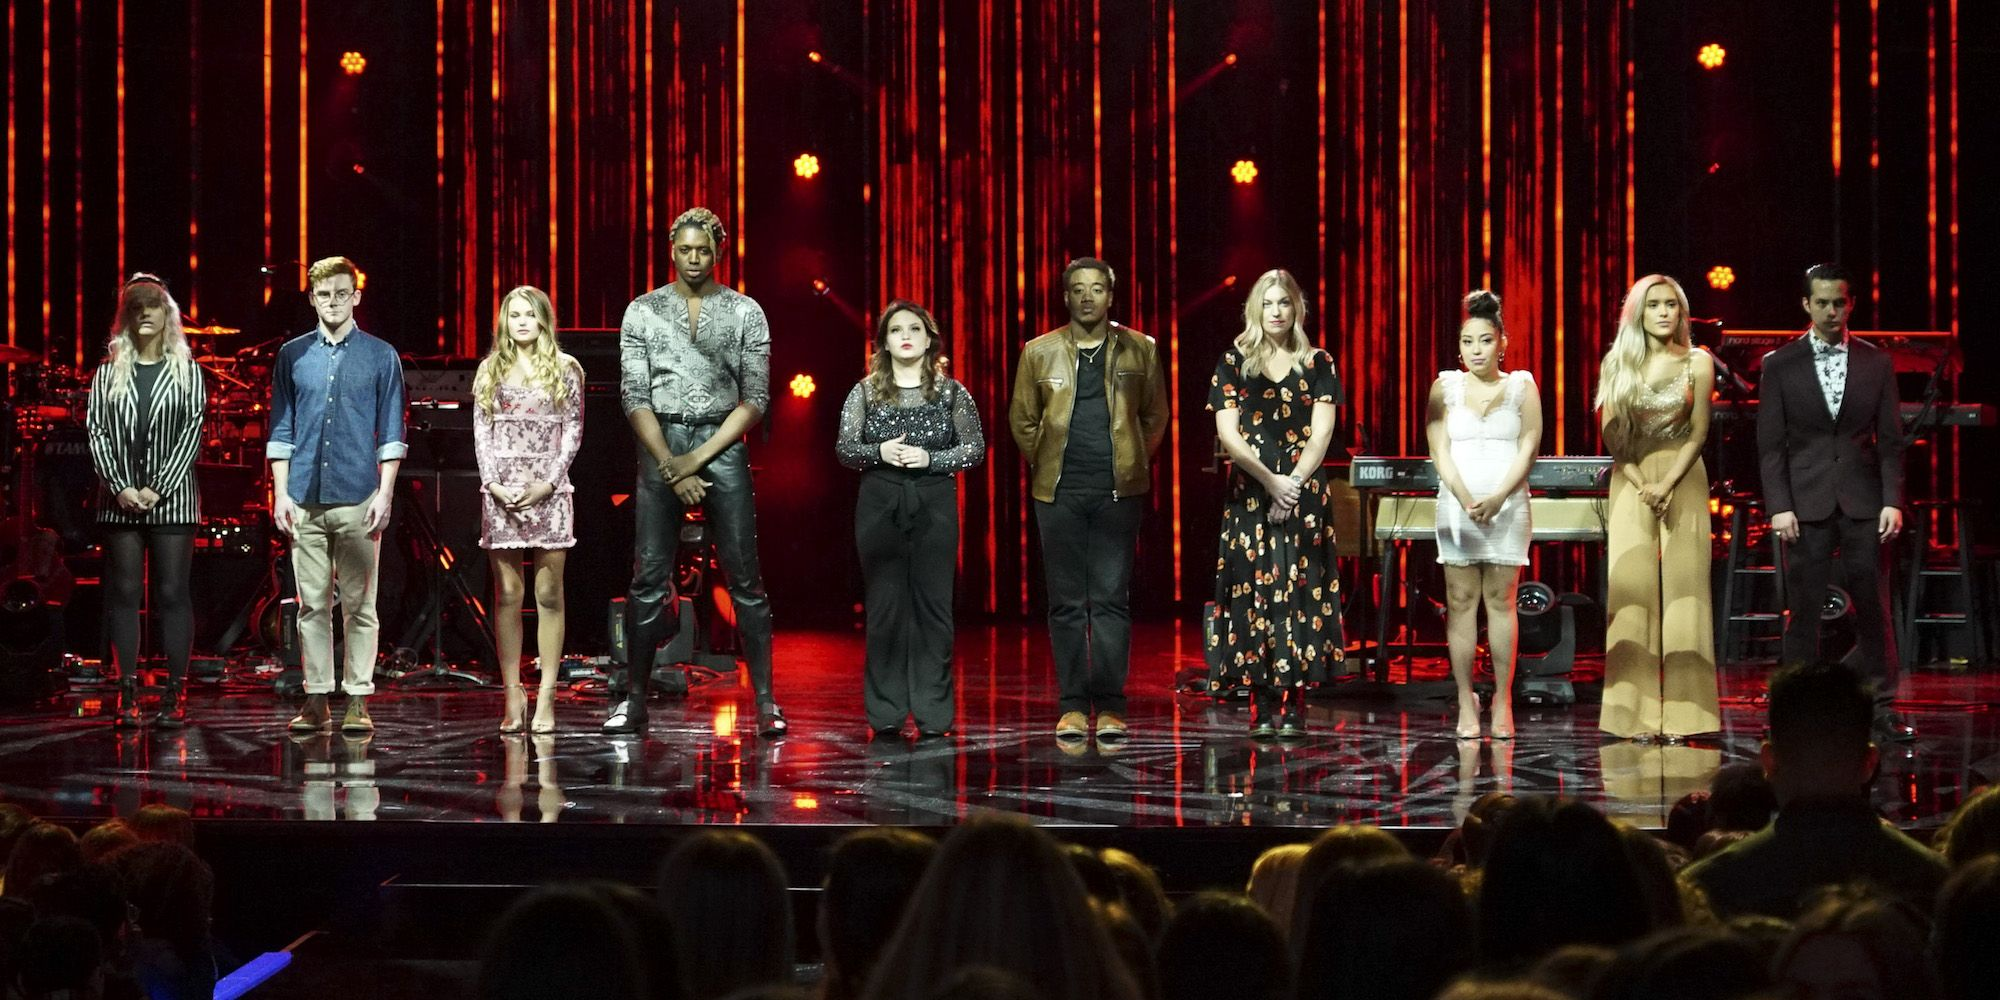 How to Vote for Contestants on 'American Idol' 2019 - American Idol